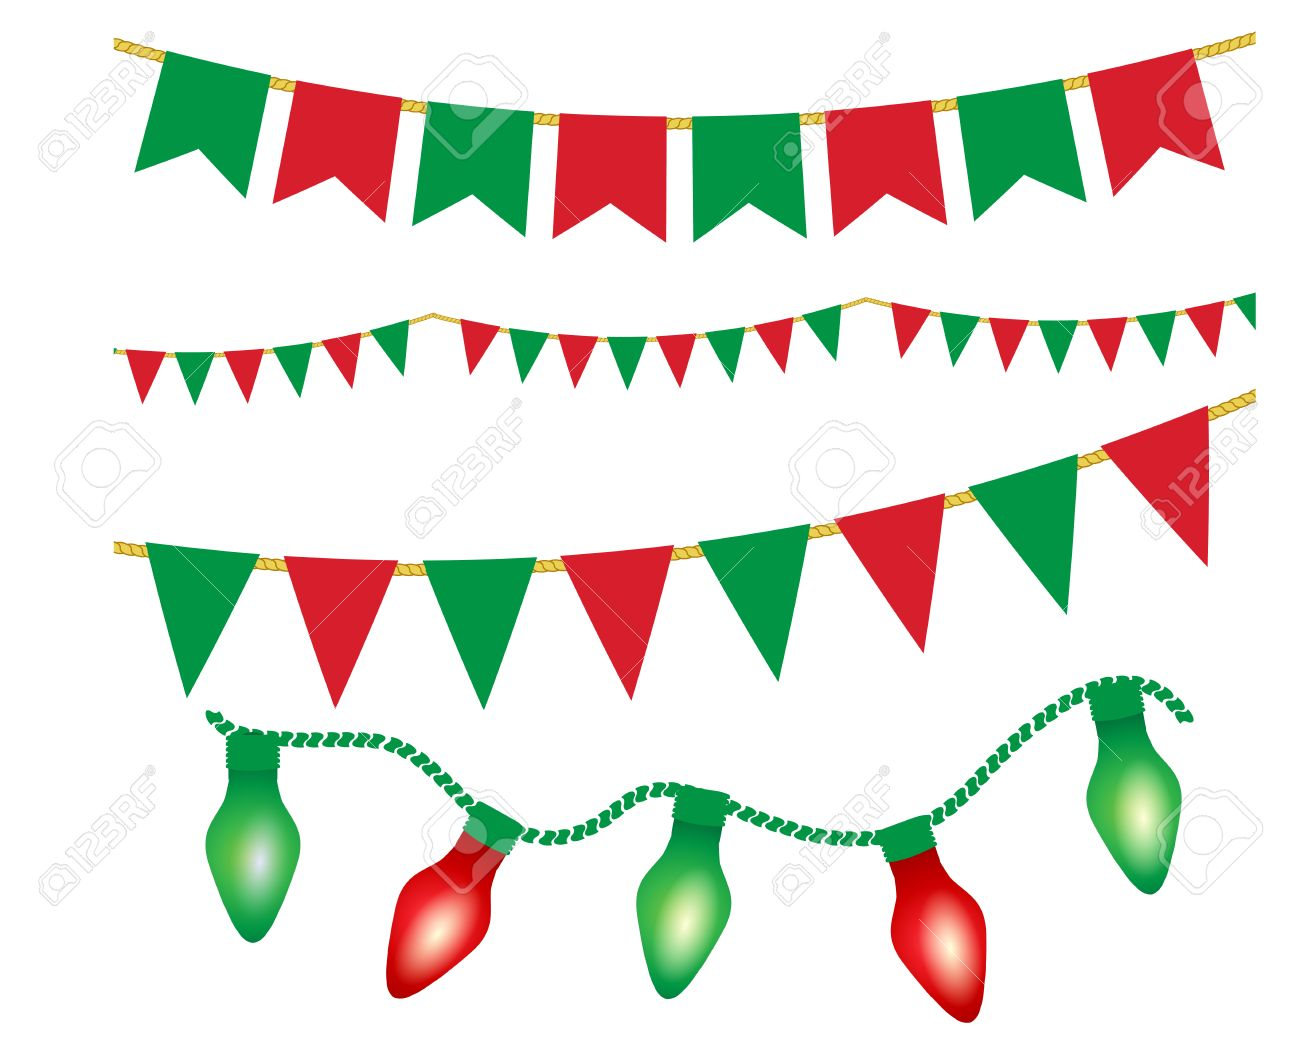 christmas lights ans flag garlands set red and green christmas elements vector illustration for - Green And Red Christmas Lights